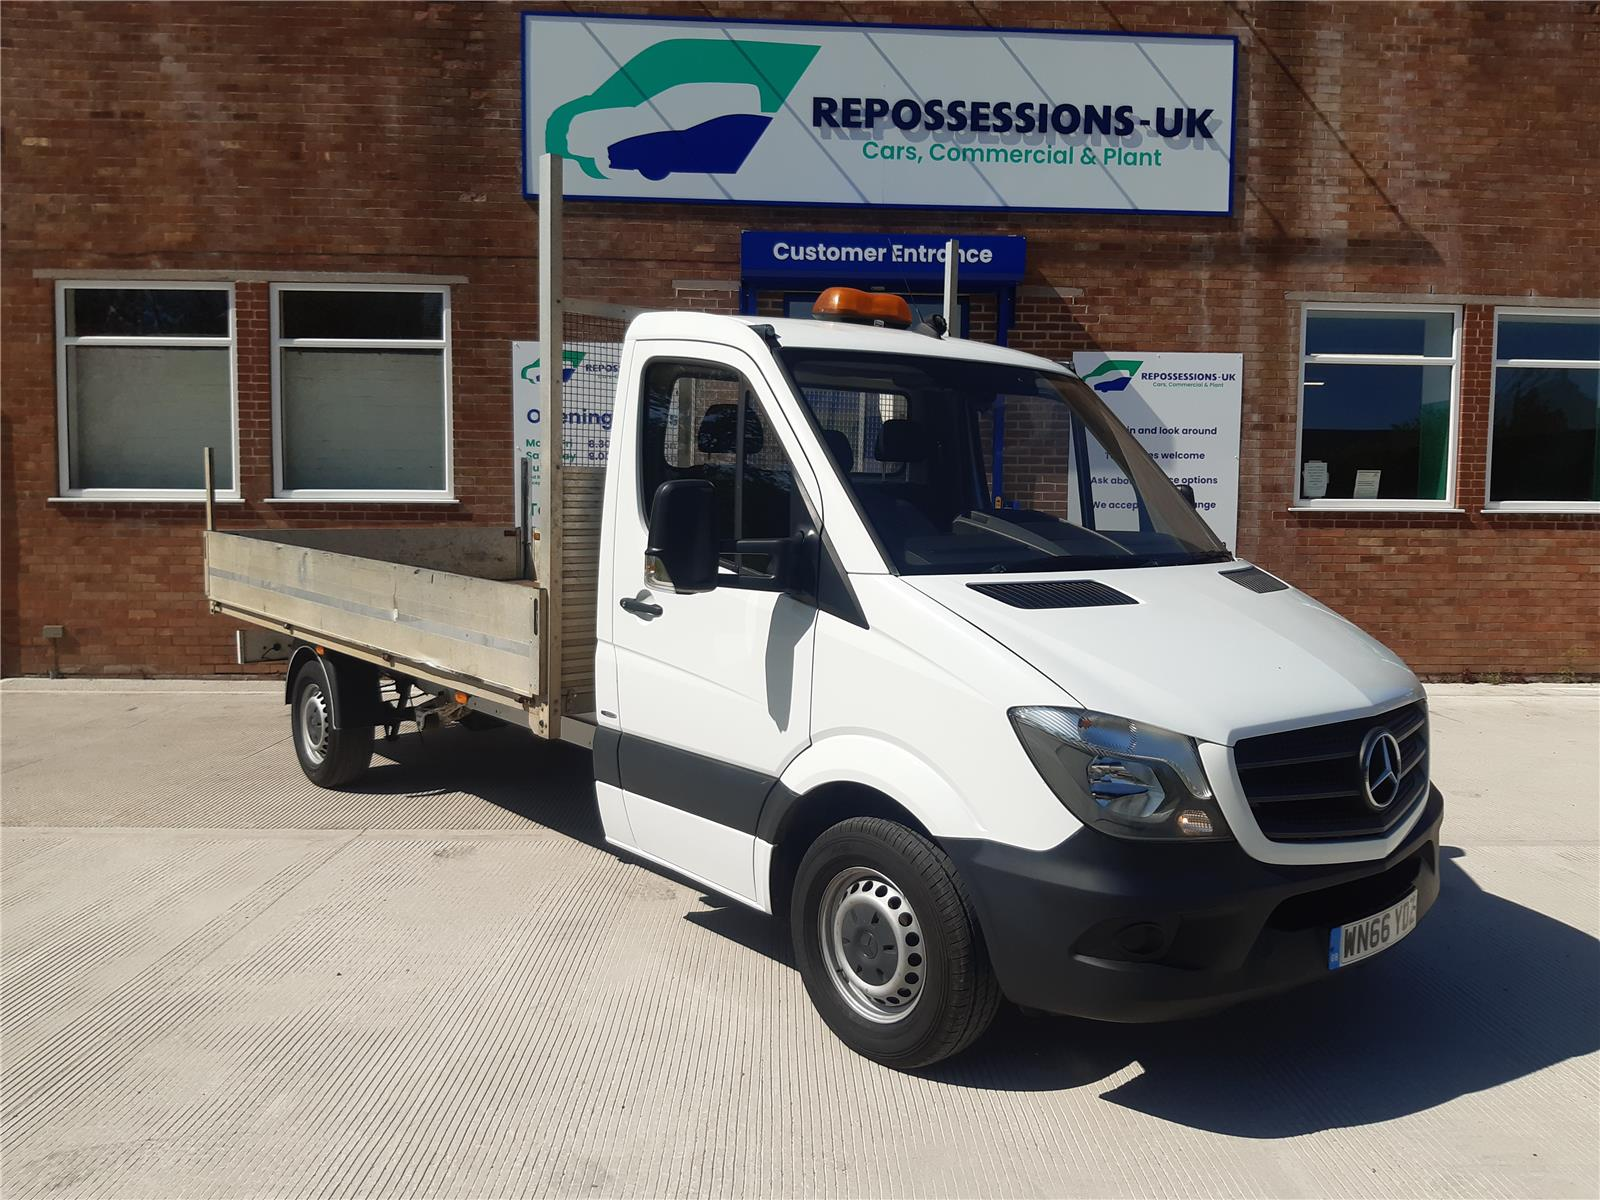 2016 MERCEDES SPRINTER 314CDI 2143 DIESEL MANUAL 6 Speed CHASSIS CAB